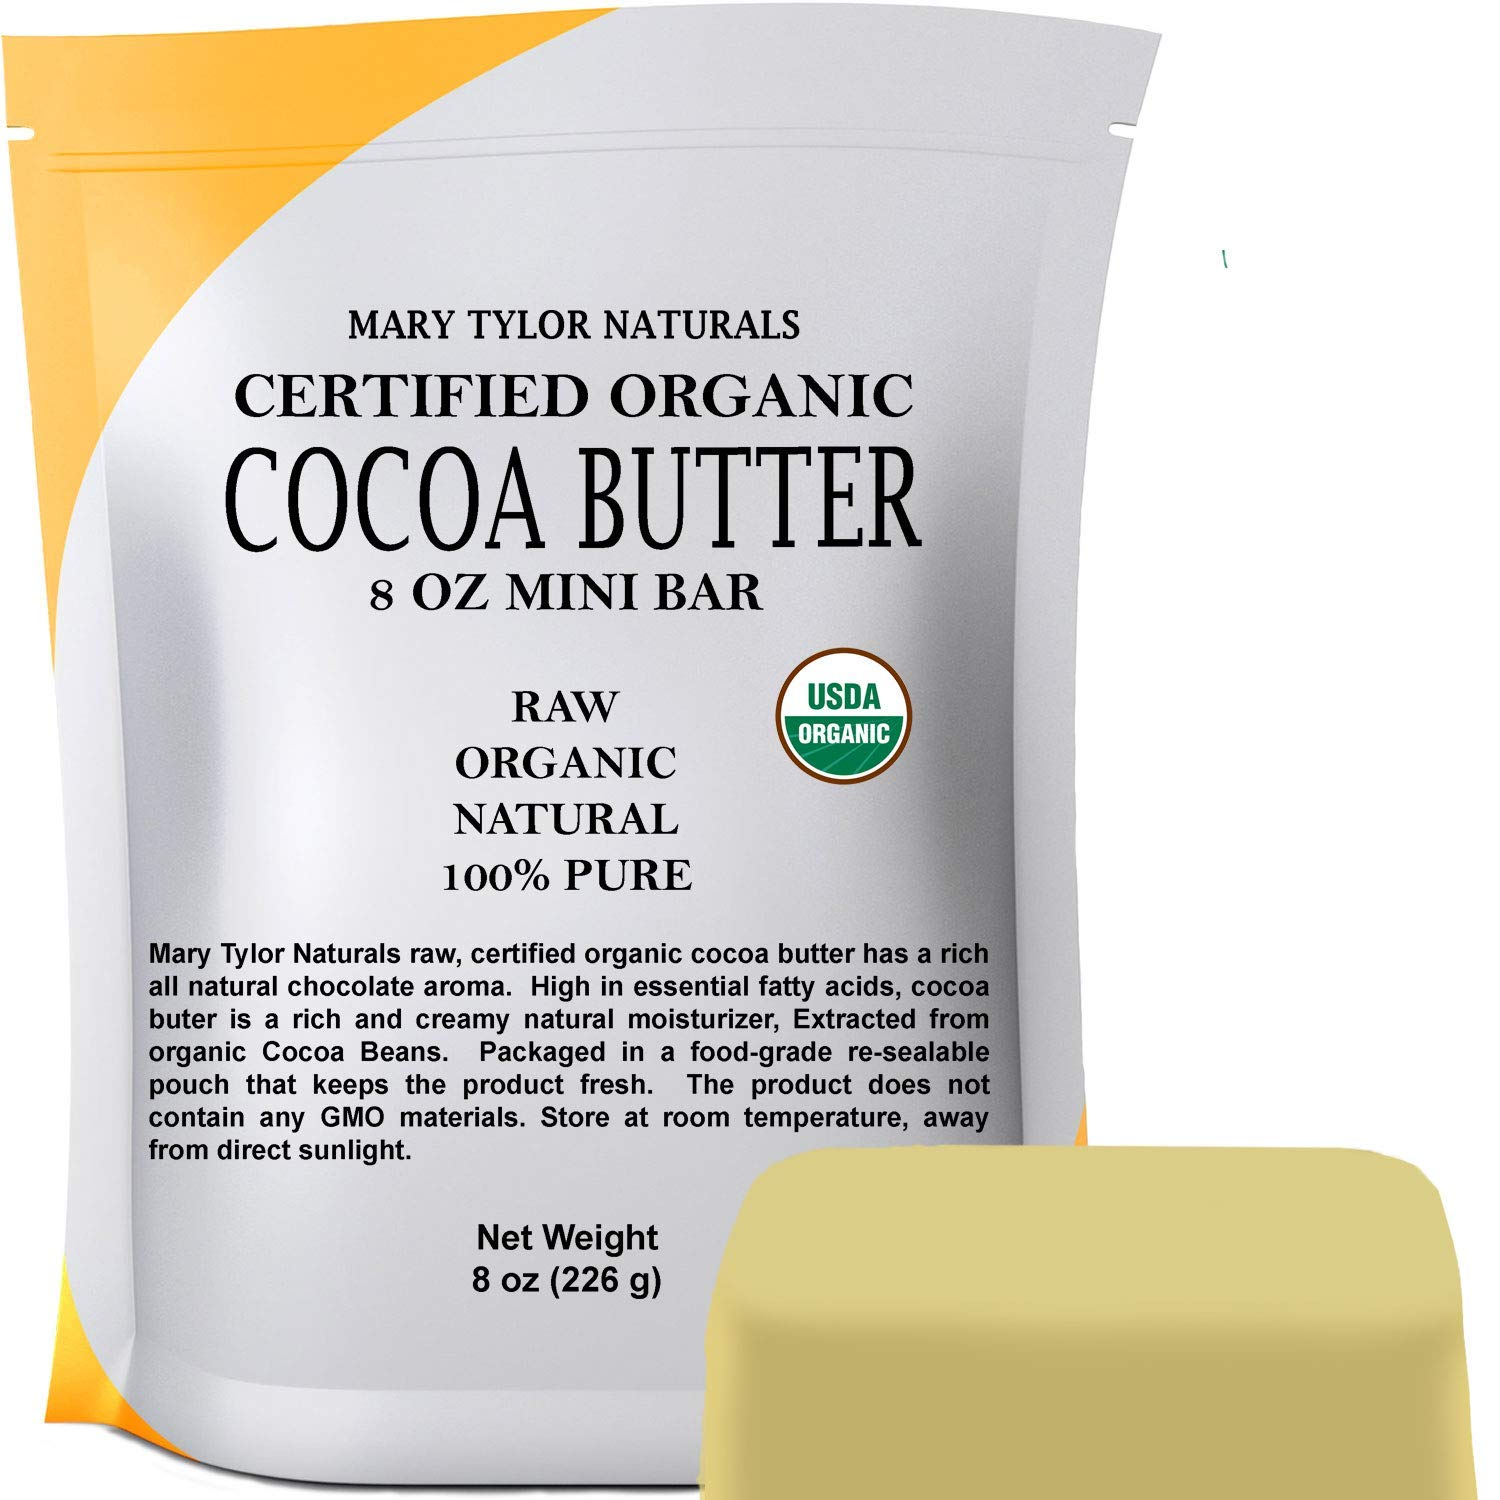 Organic Cocoa Butter (8 oz), USDA Certified by Mary Tylor Naturals Raw Unrefined, Non-Deodorized, Rich In Antioxidants, For DIY Recipes, Lip Balms, Lotions, Creams, Stretch Marks